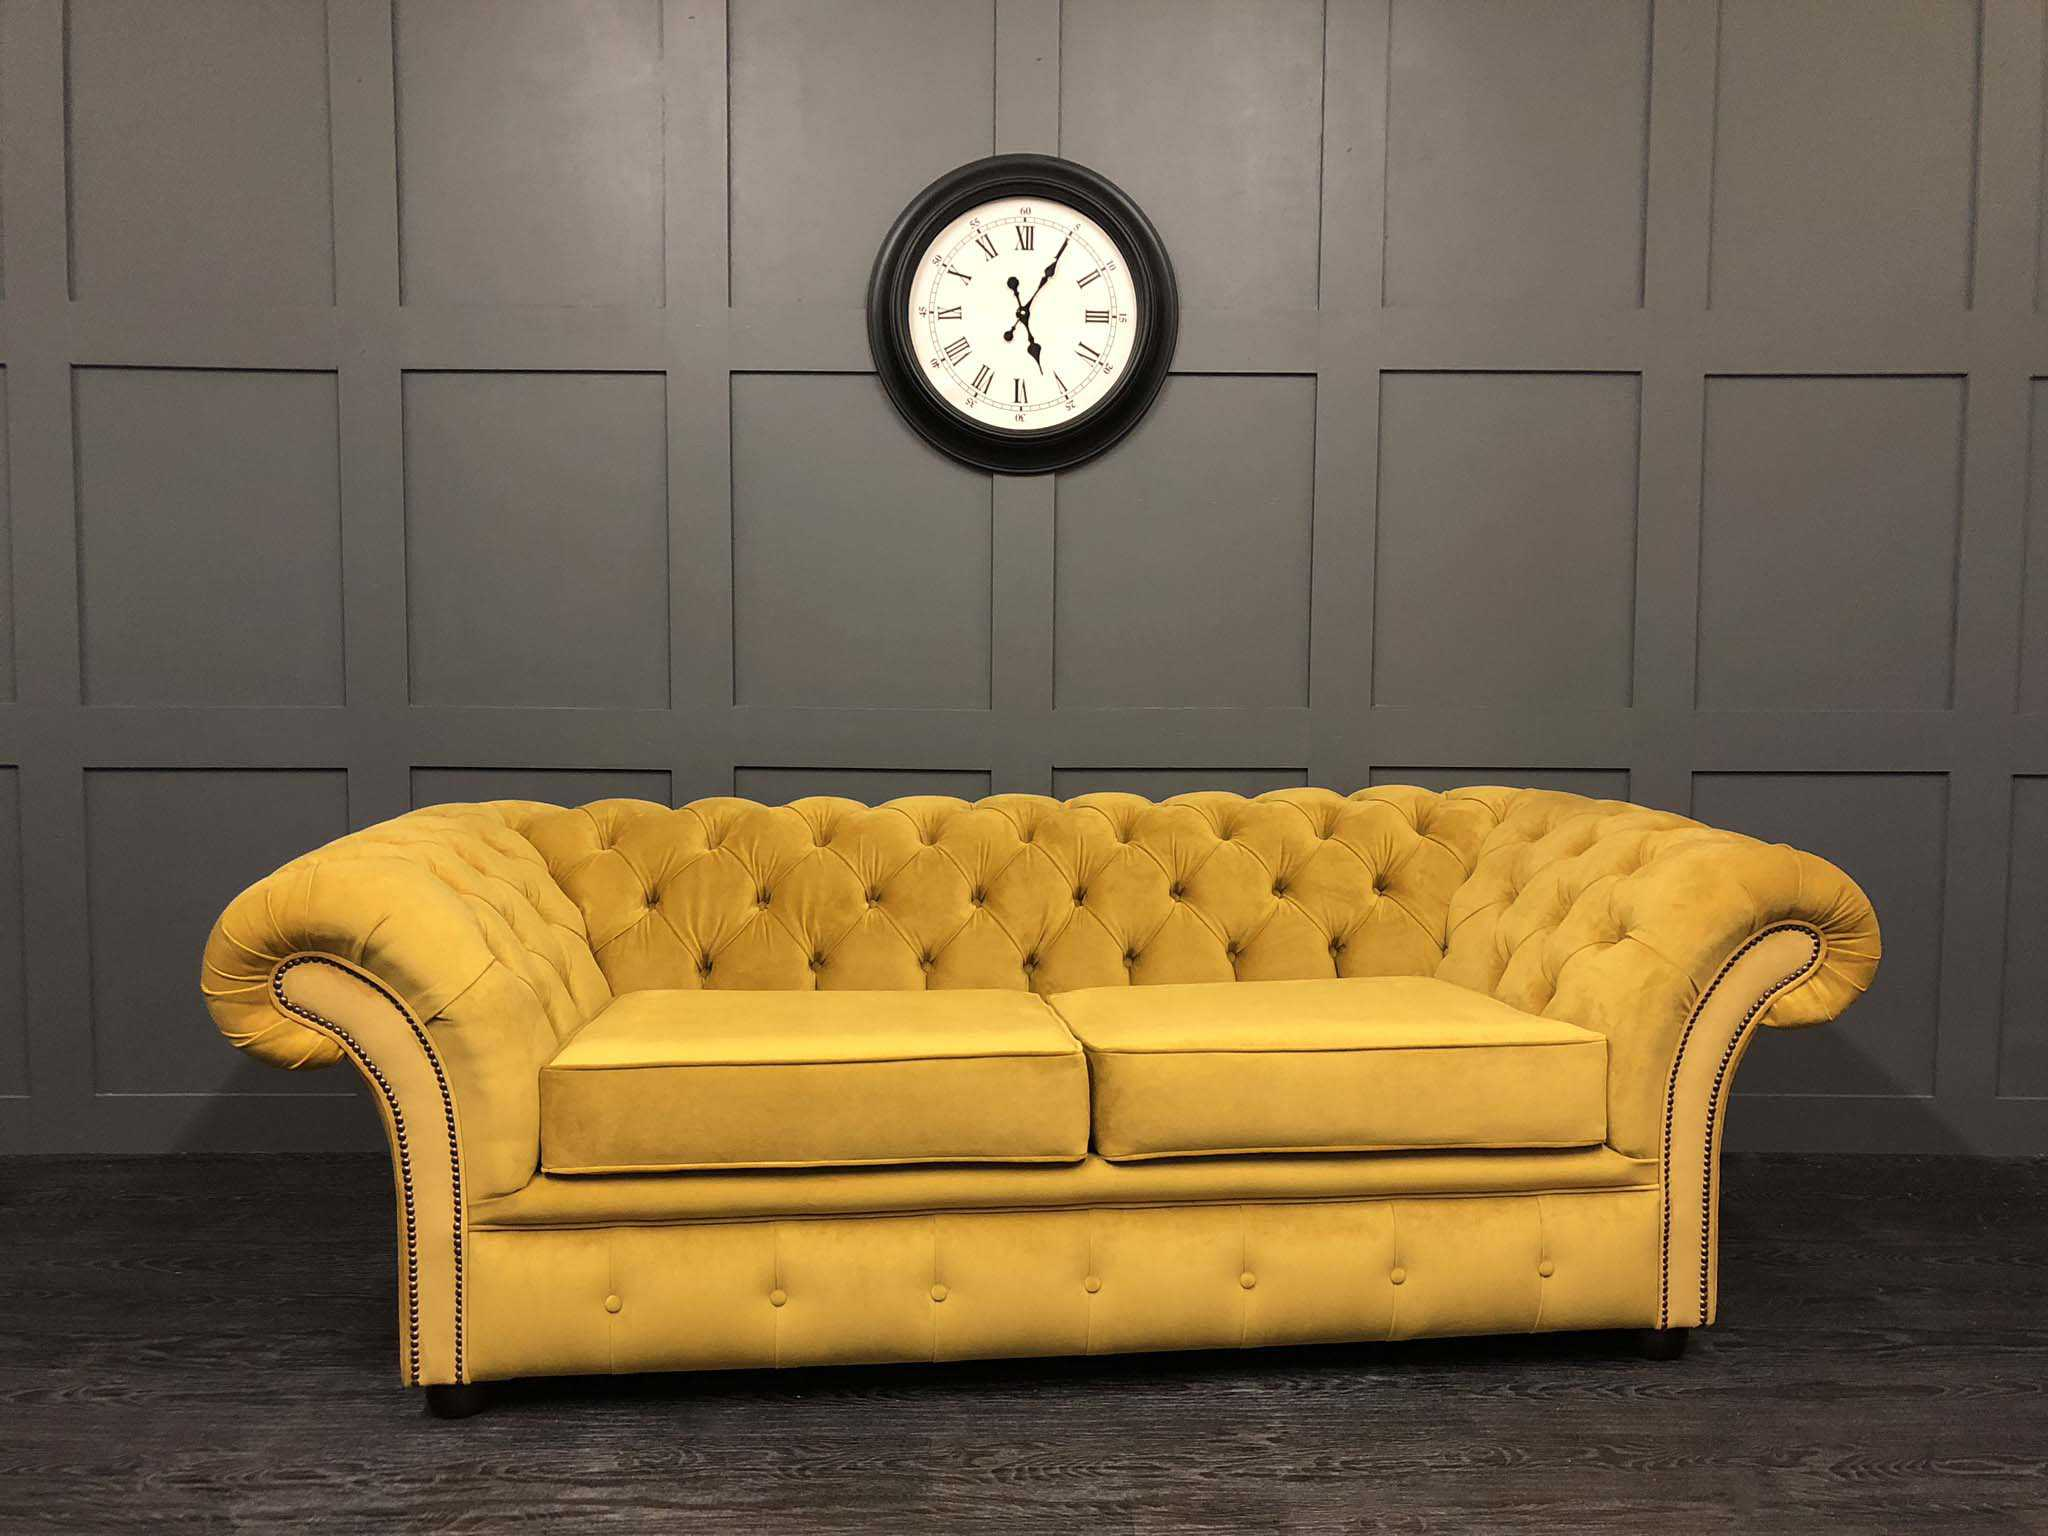 London Chesterfield Sofa Bed Warwick Turmeric Plush velvet